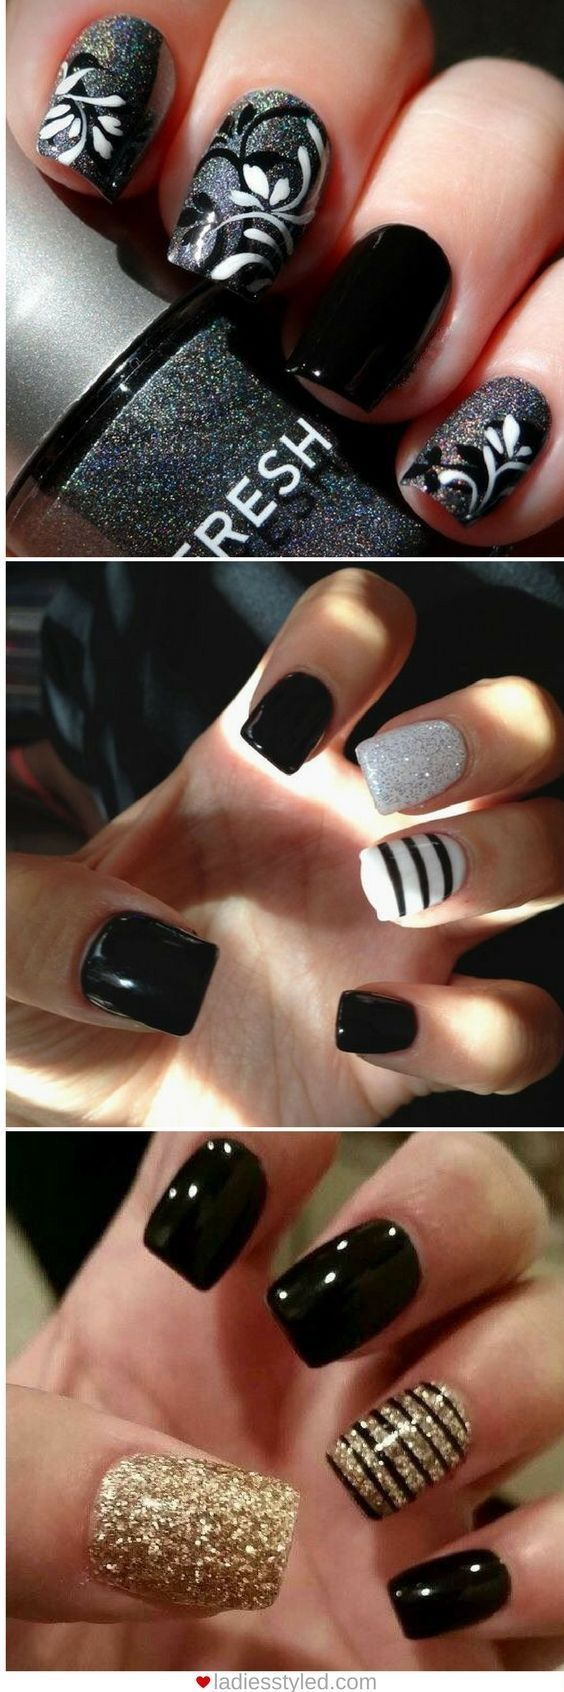 Best 25 beautiful nail art ideas on pinterest nails inspiration 106 beautiful nail art designs to copy right now prinsesfo Gallery